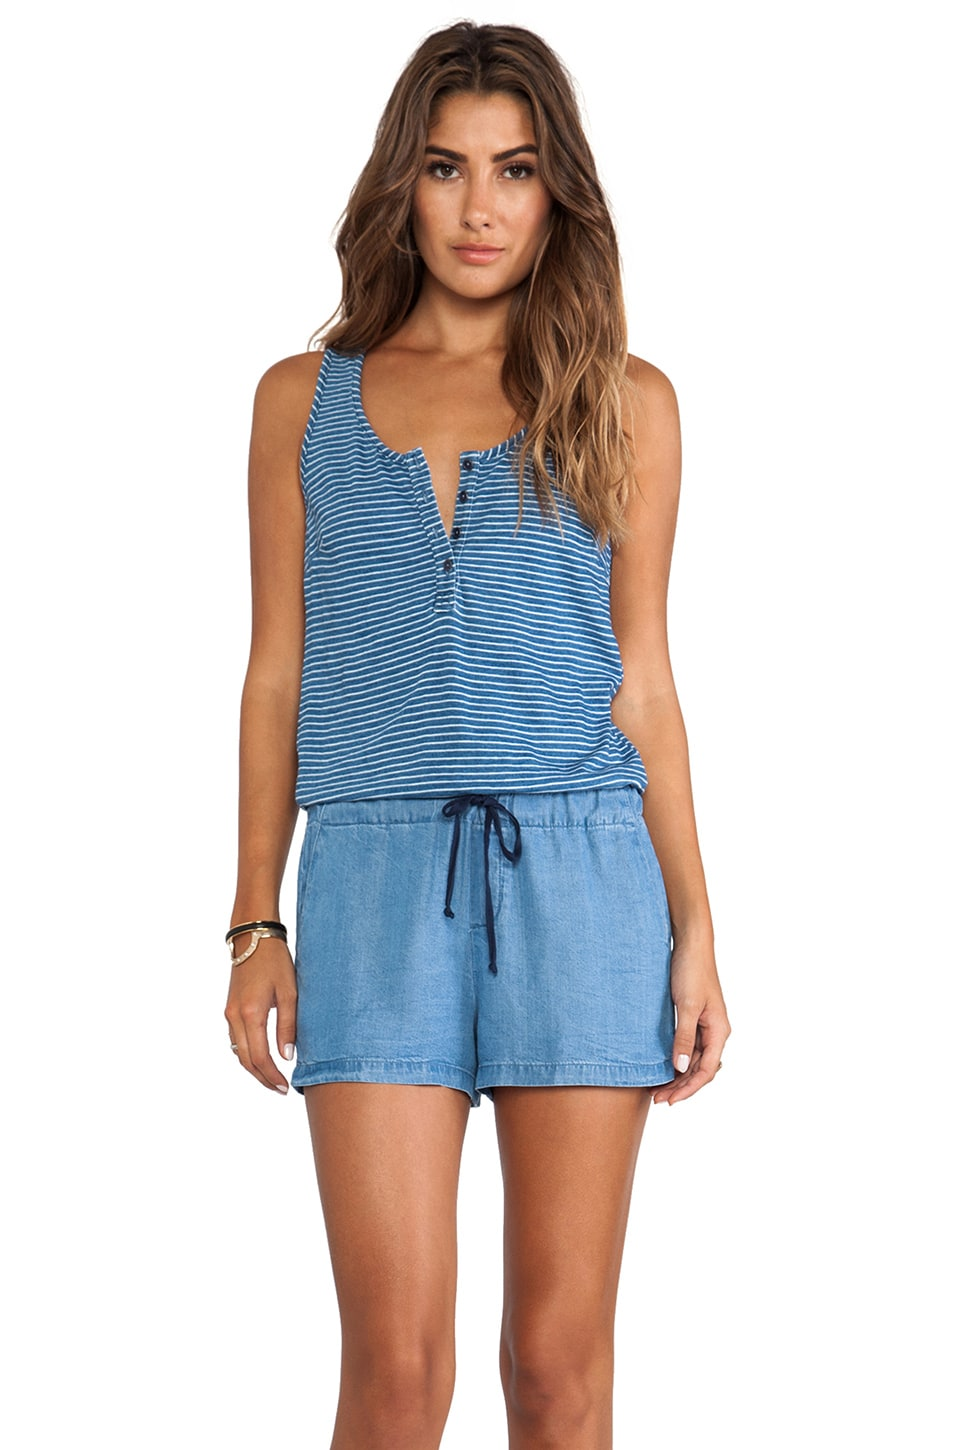 Splendid Mini Romper in Medium Wash